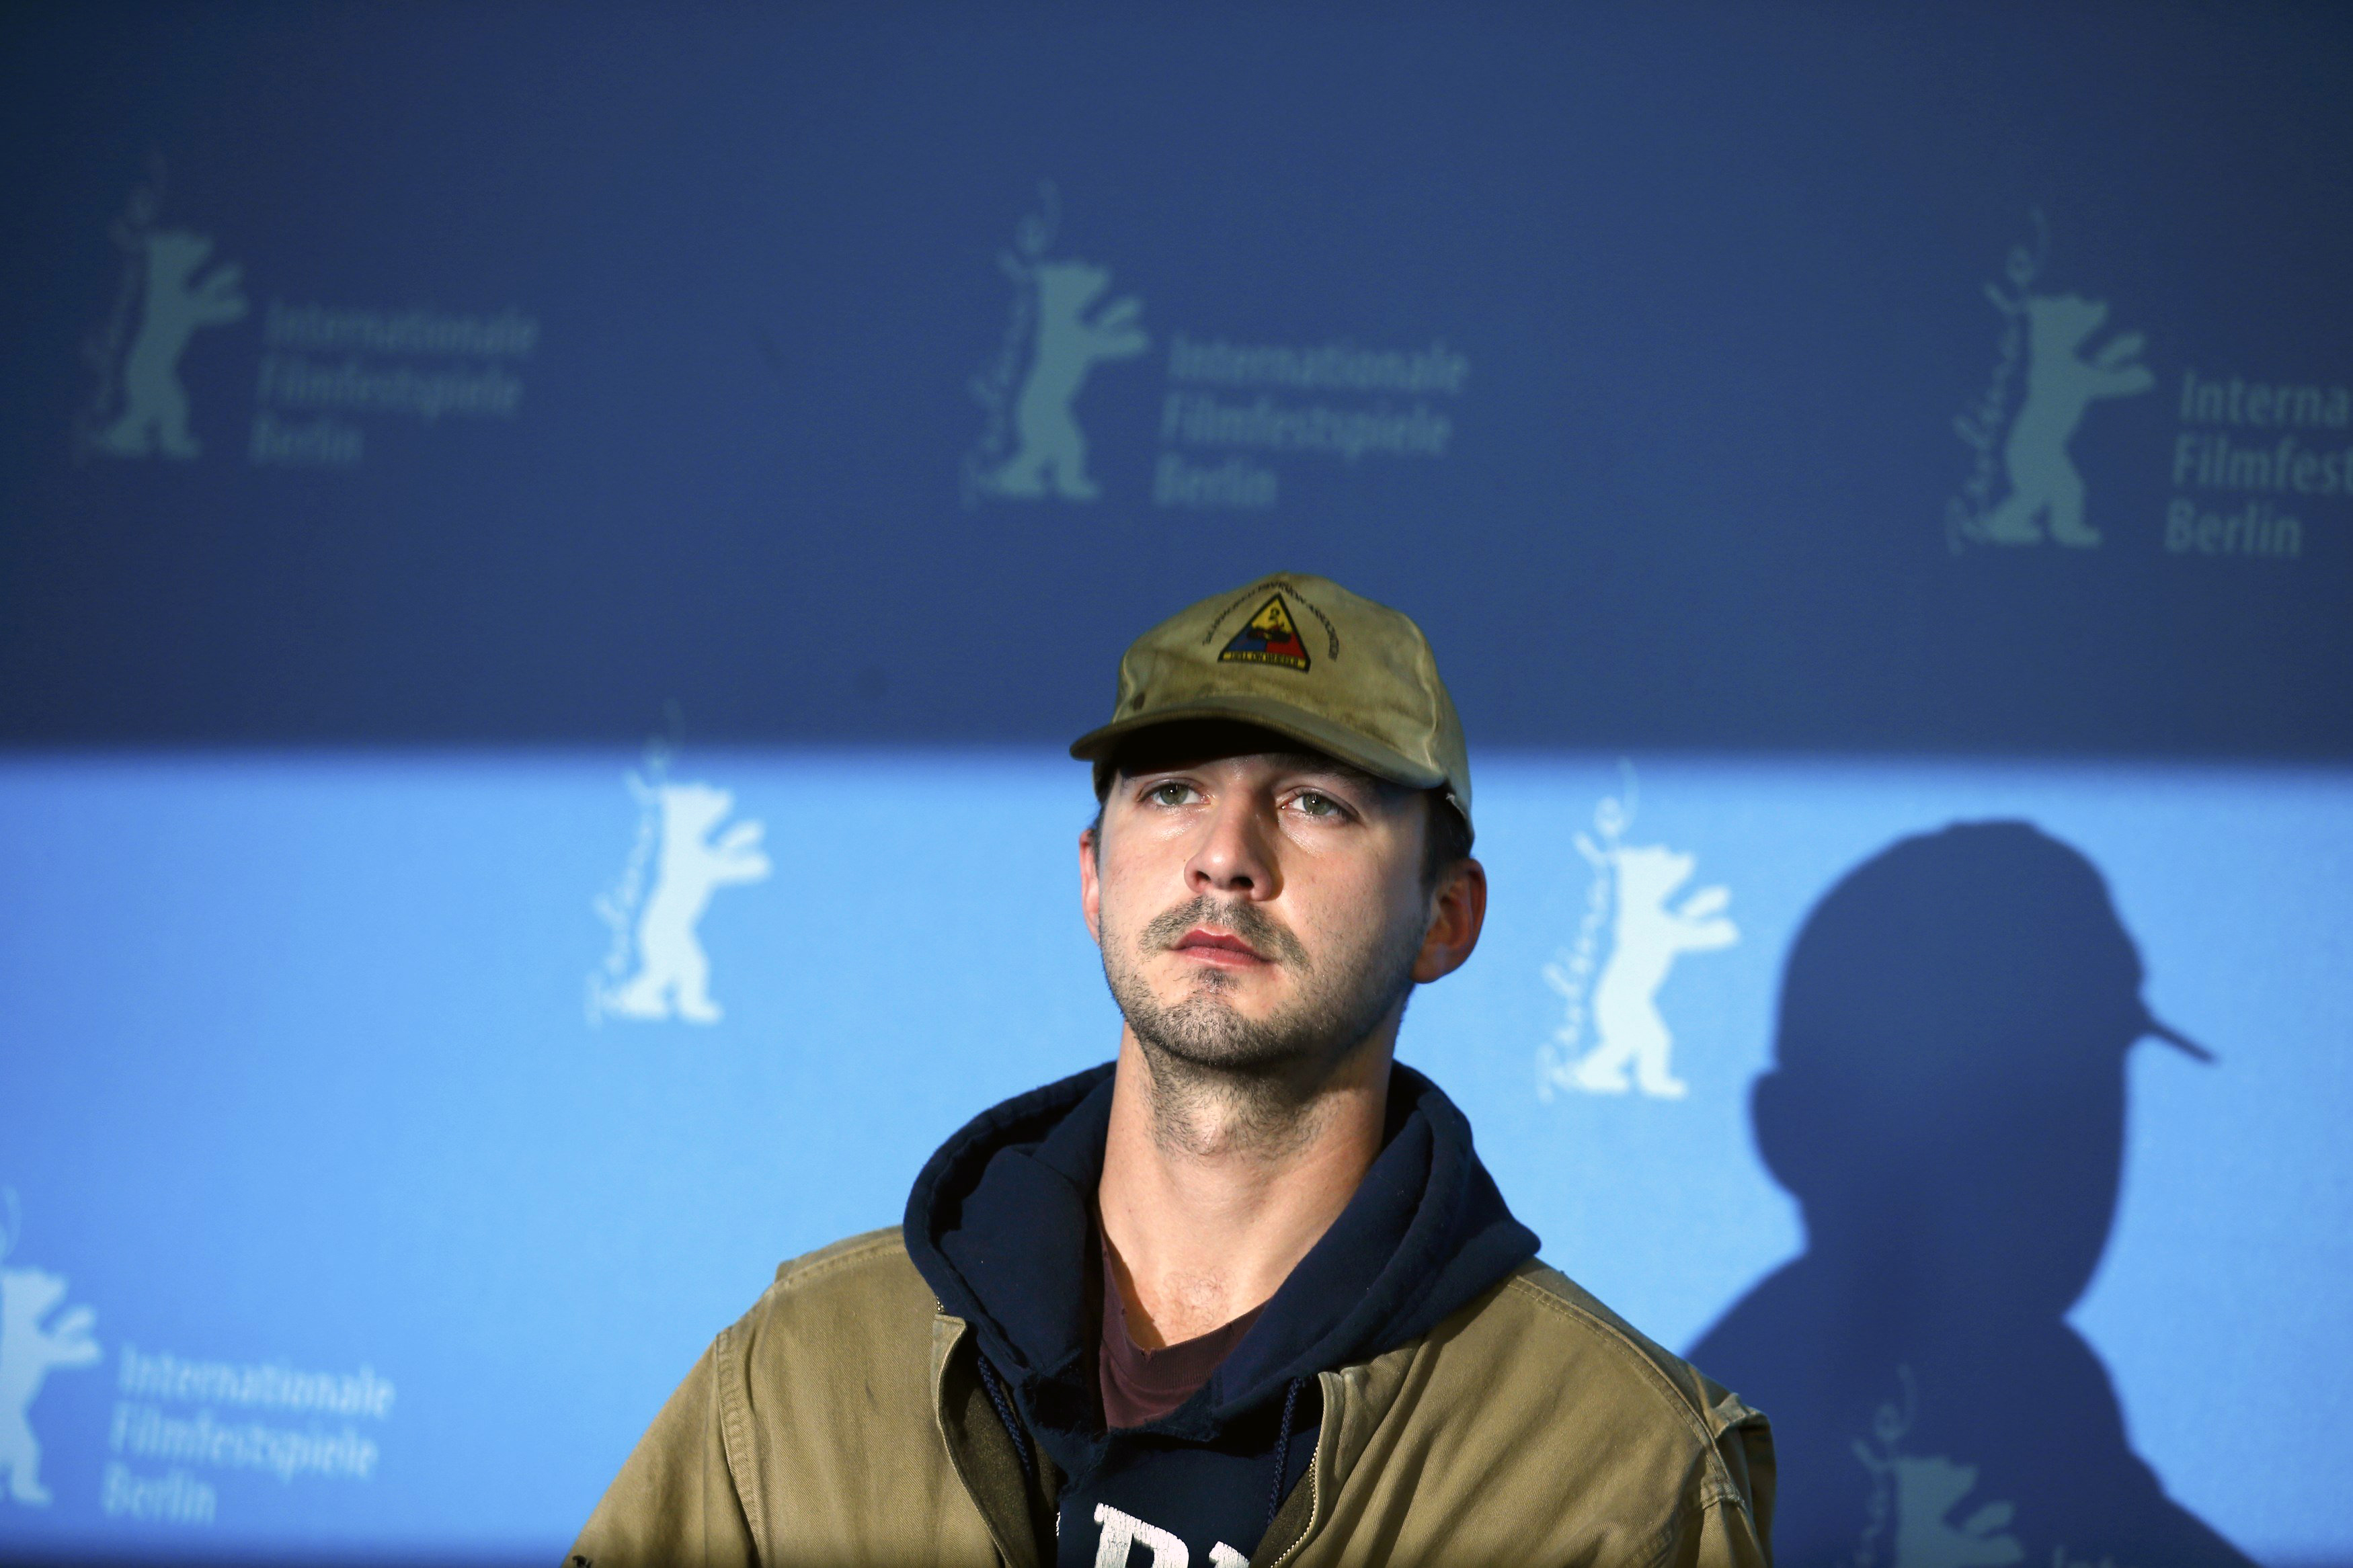 Cast member Shia LaBeouf poses during a photocall to promote the movie  Nymphomaniac Volume I  during the 64th Berlinale International Film Festival in Berlin, February 9, 2014.